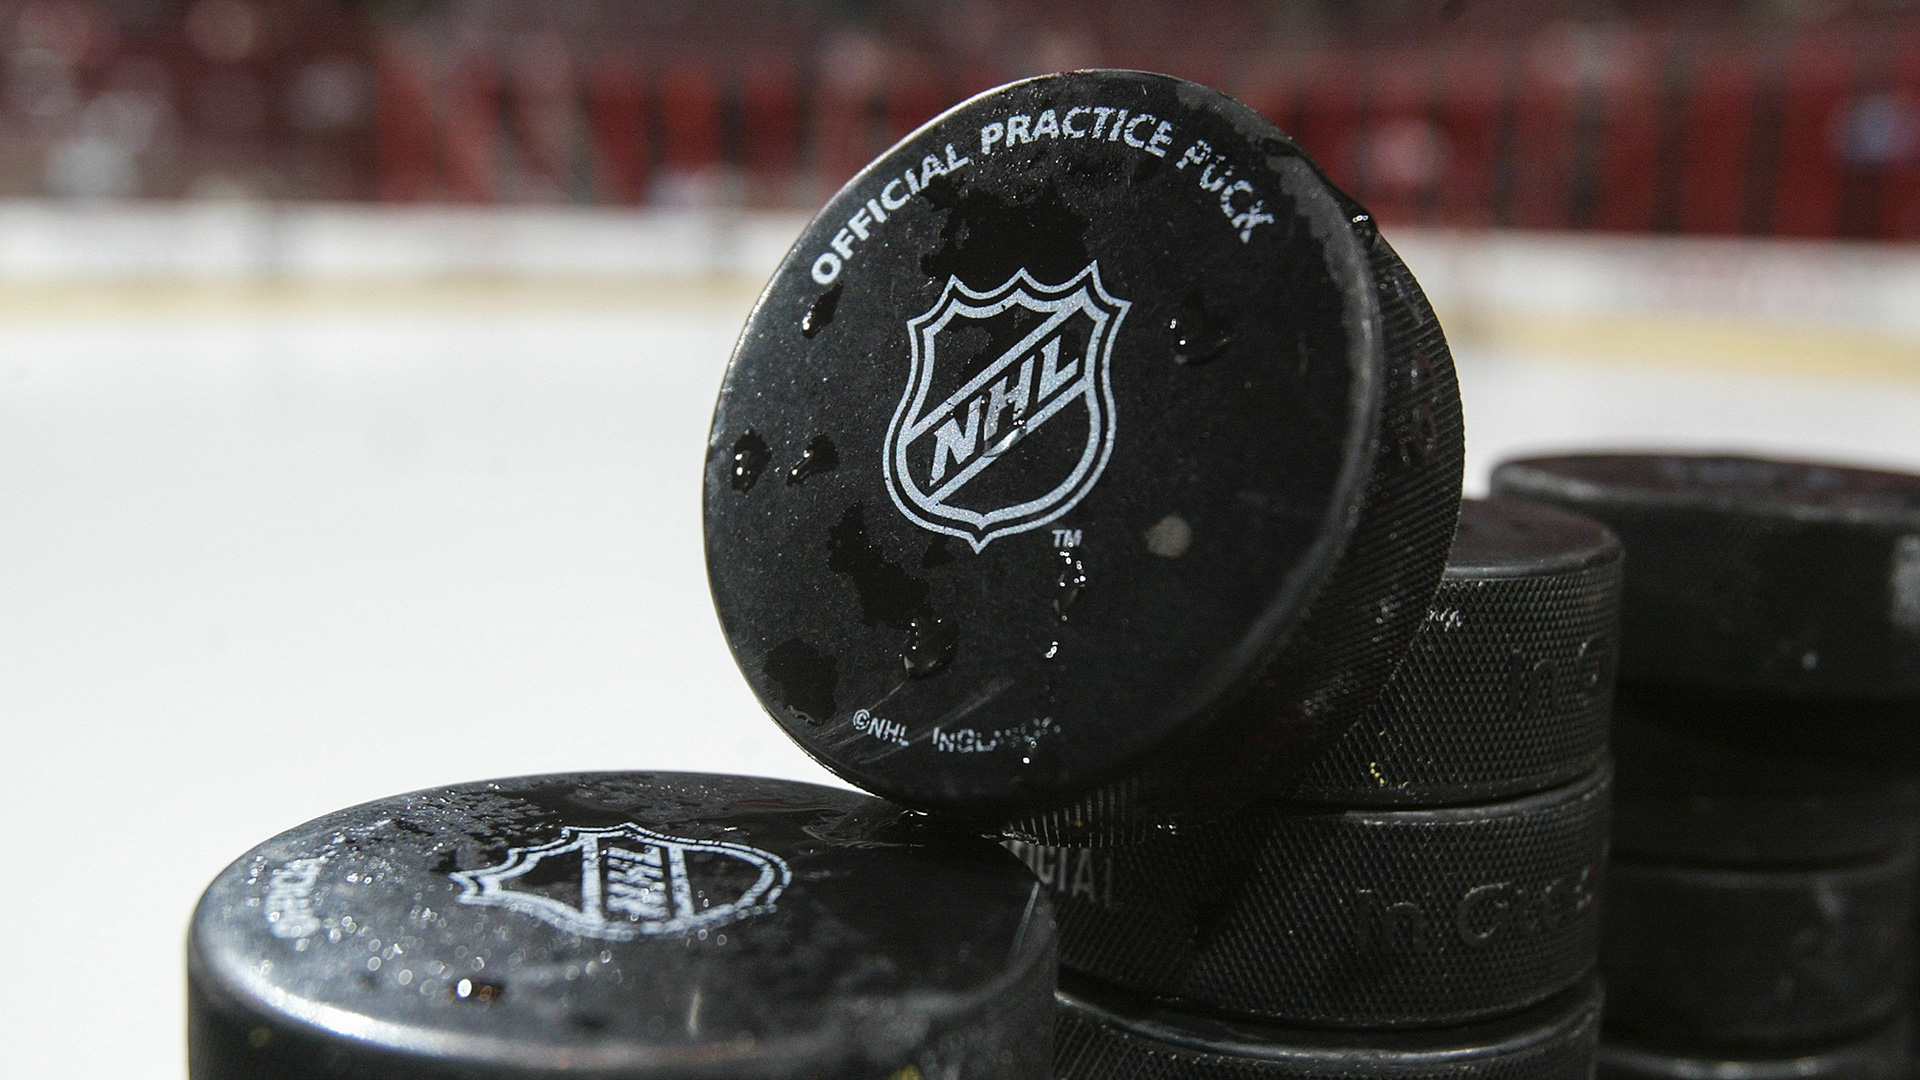 Art-03-nhl-hockey-pucks-070316-getty-ftrjpg_1wezgcxzjwq8z1gg9eqdnk4ddg